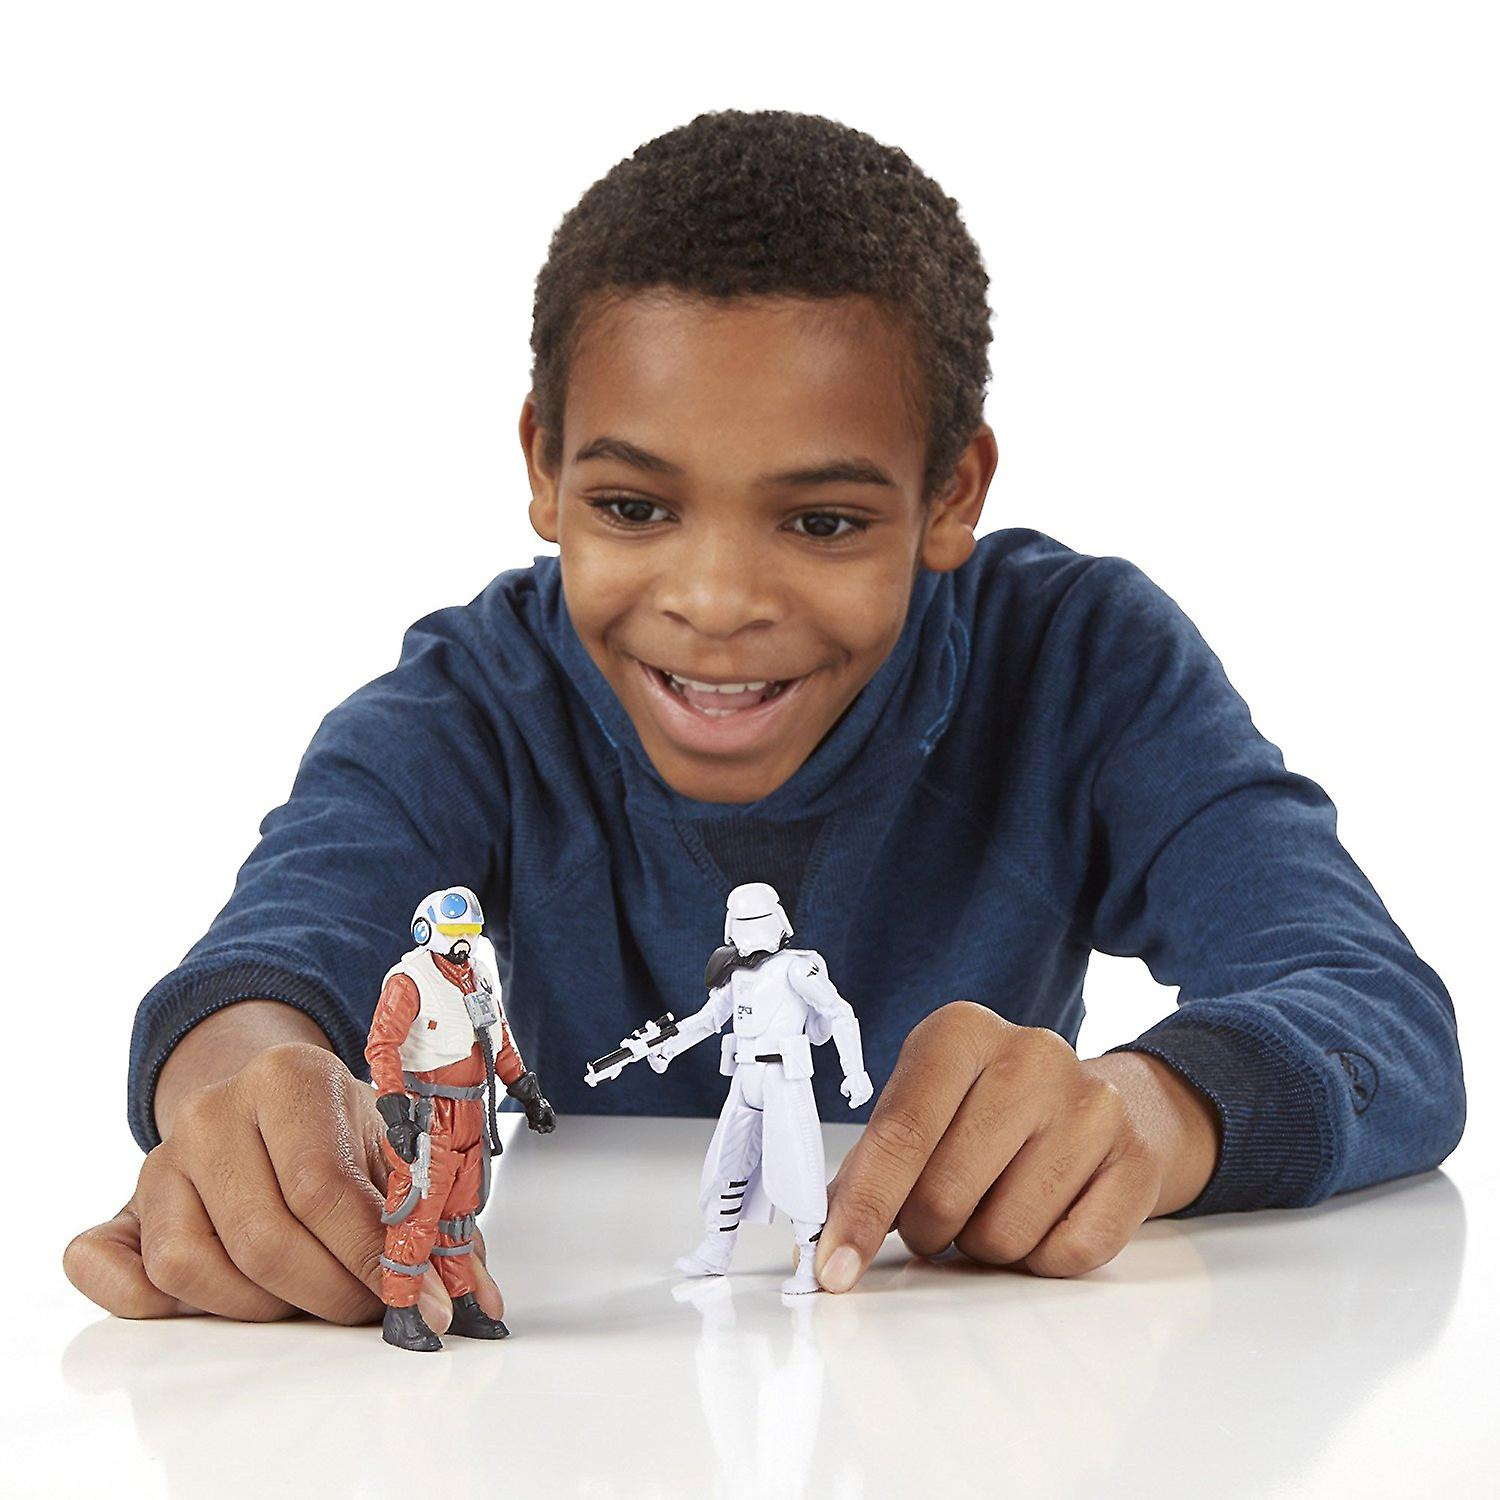 The Force Awakens 3.75 Inch 2 Pack Snap Wexley and First Order Snowtr Star Wars